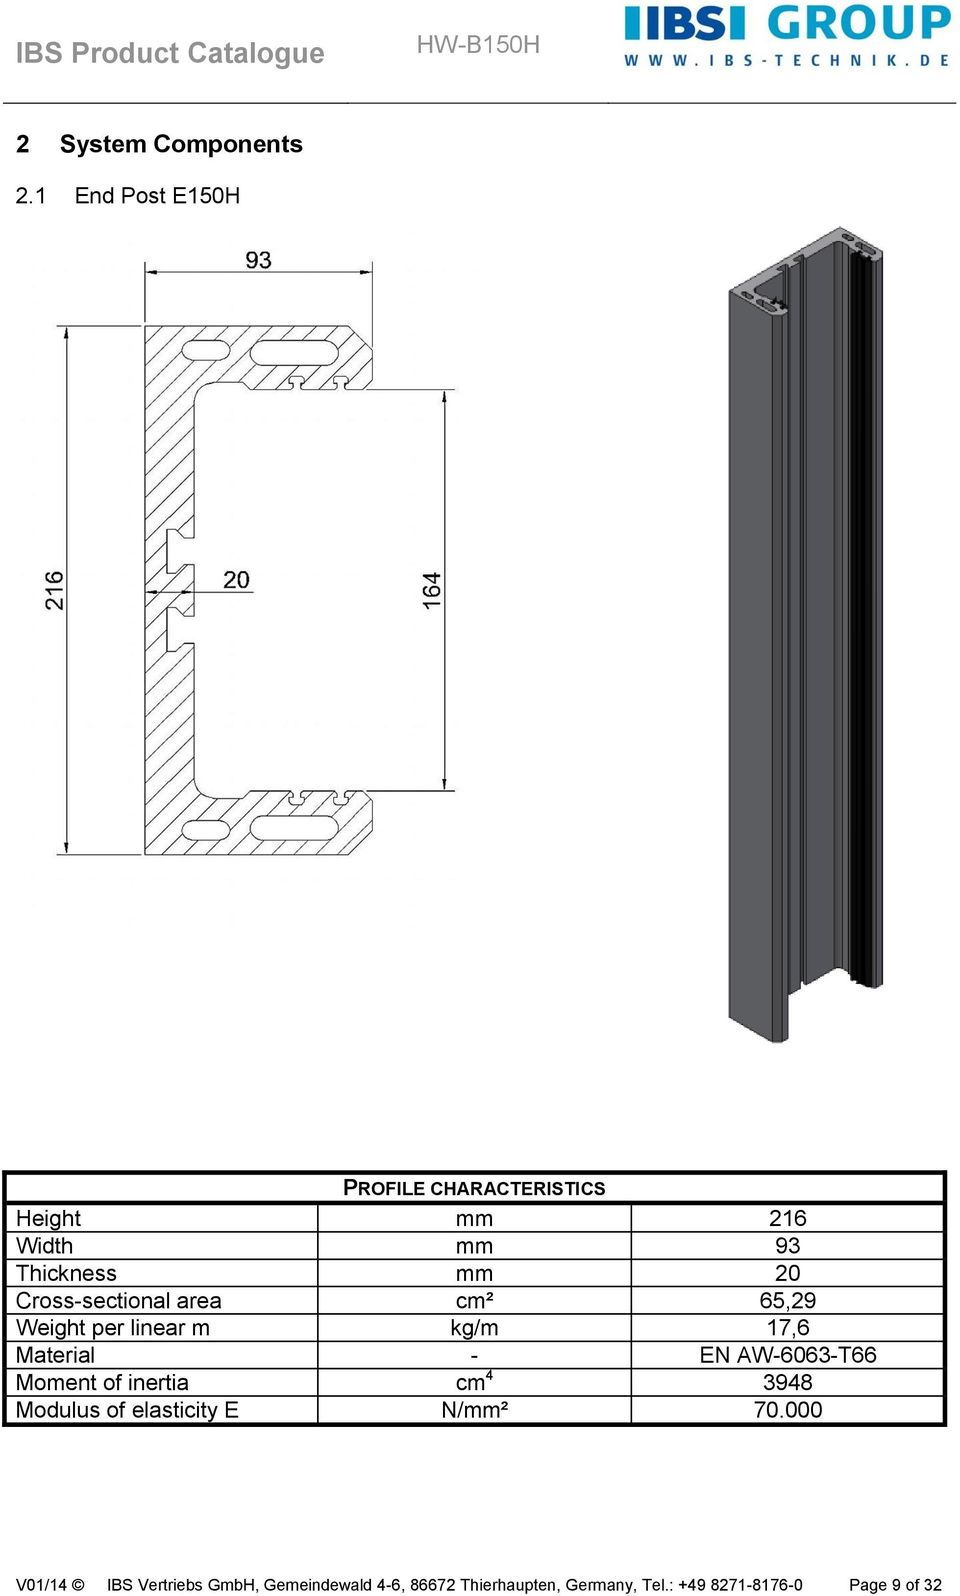 Cross-sectional area cm² 65,29 Weight per linear m kg/m 17,6 Material - EN AW-6063-T66